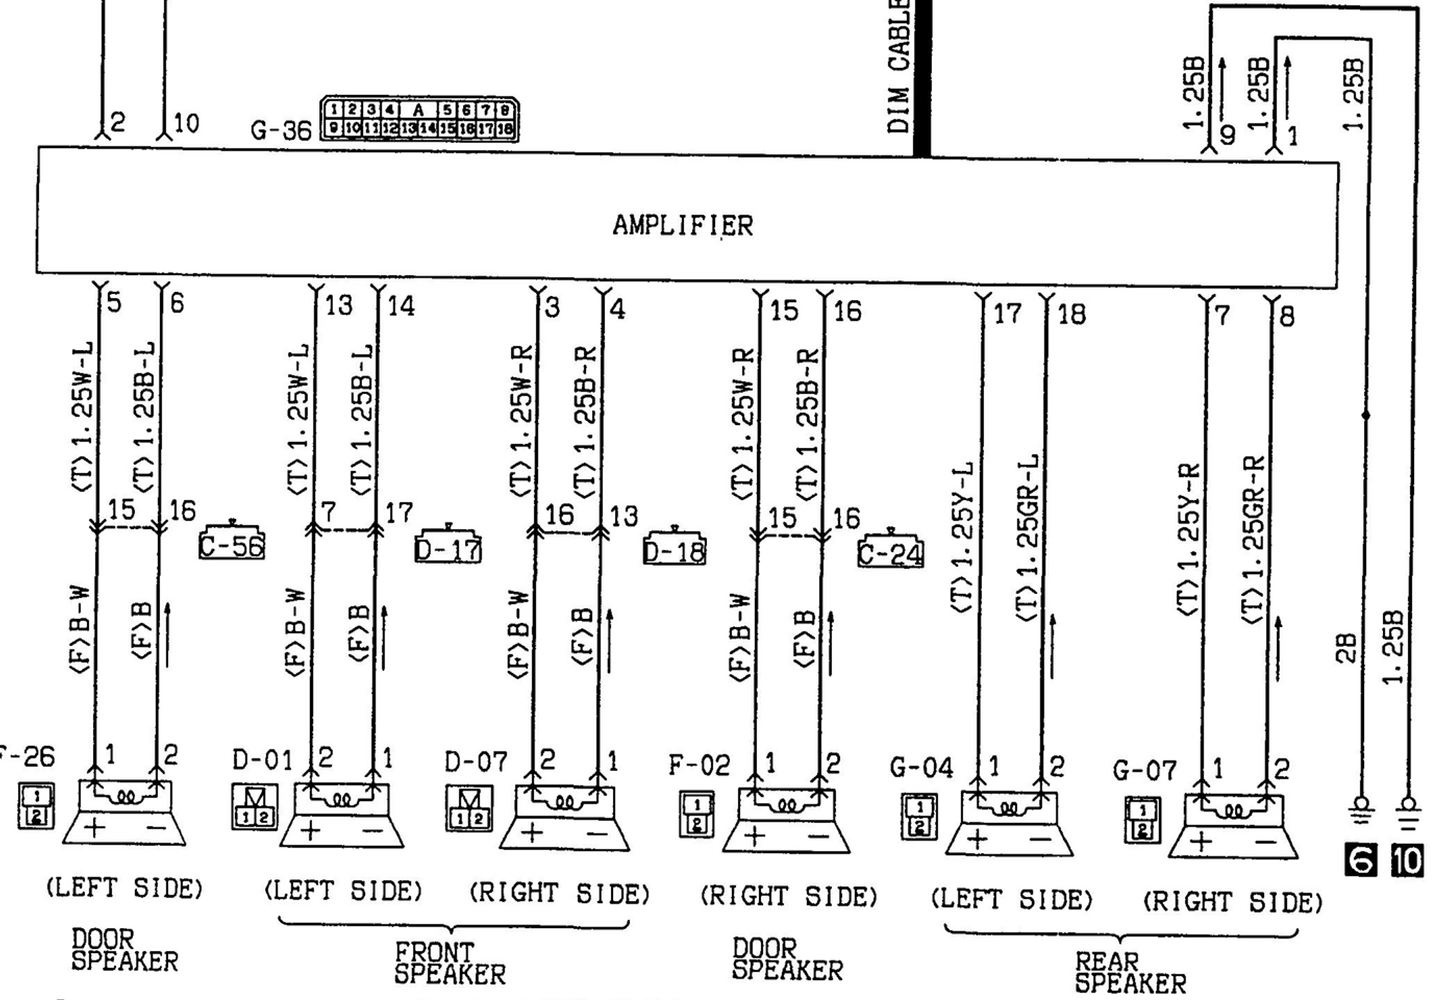 1997 eclipse wiring diagram 1997 wiring diagrams